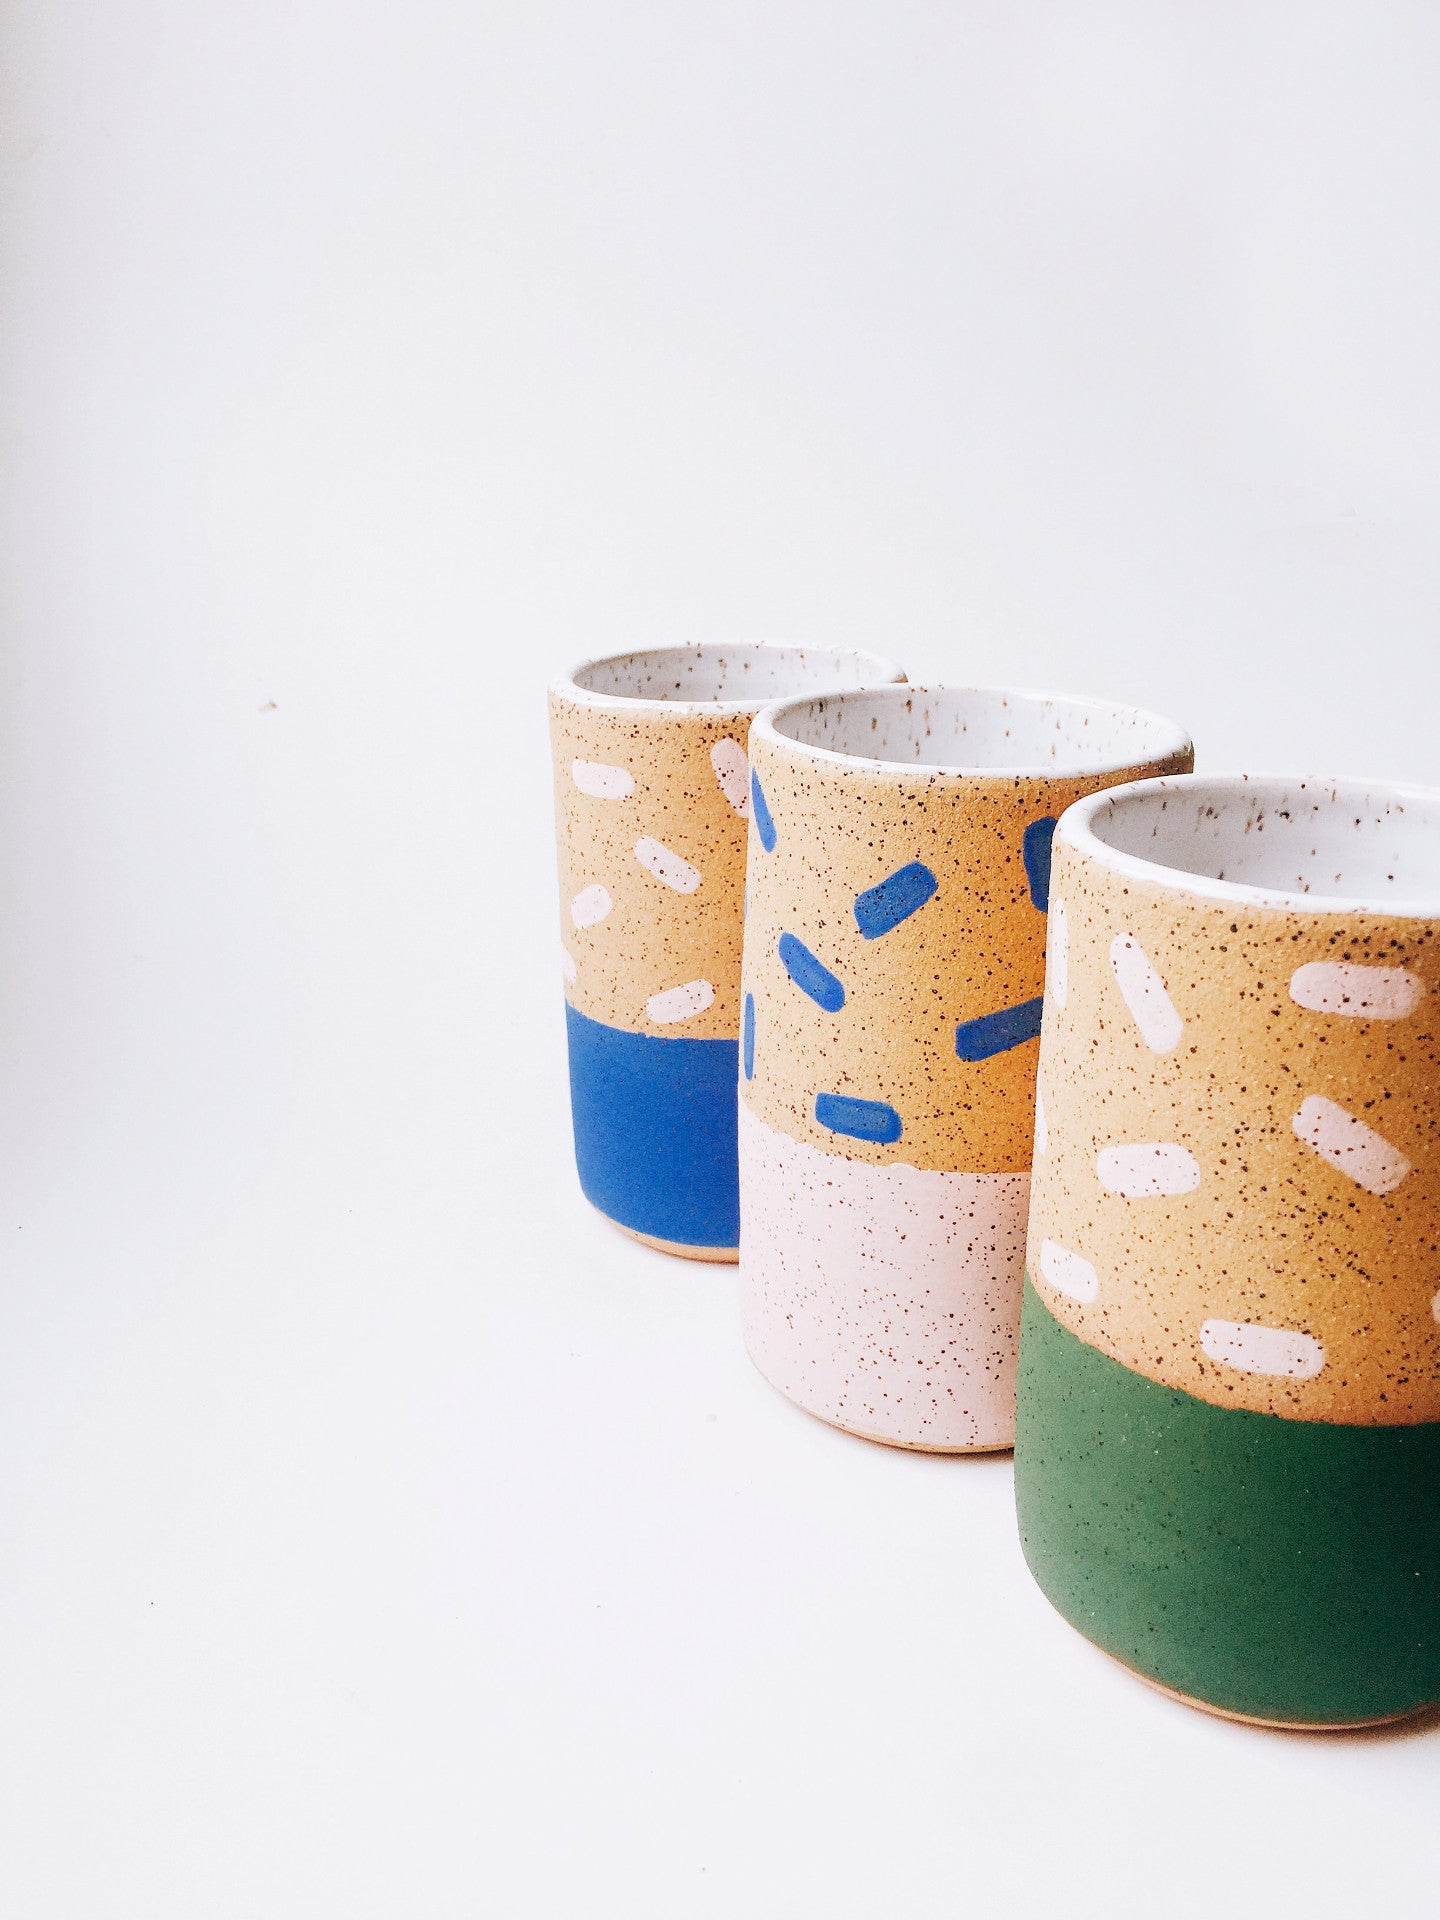 Dots Pattern Tall Skinny Speckle Mug